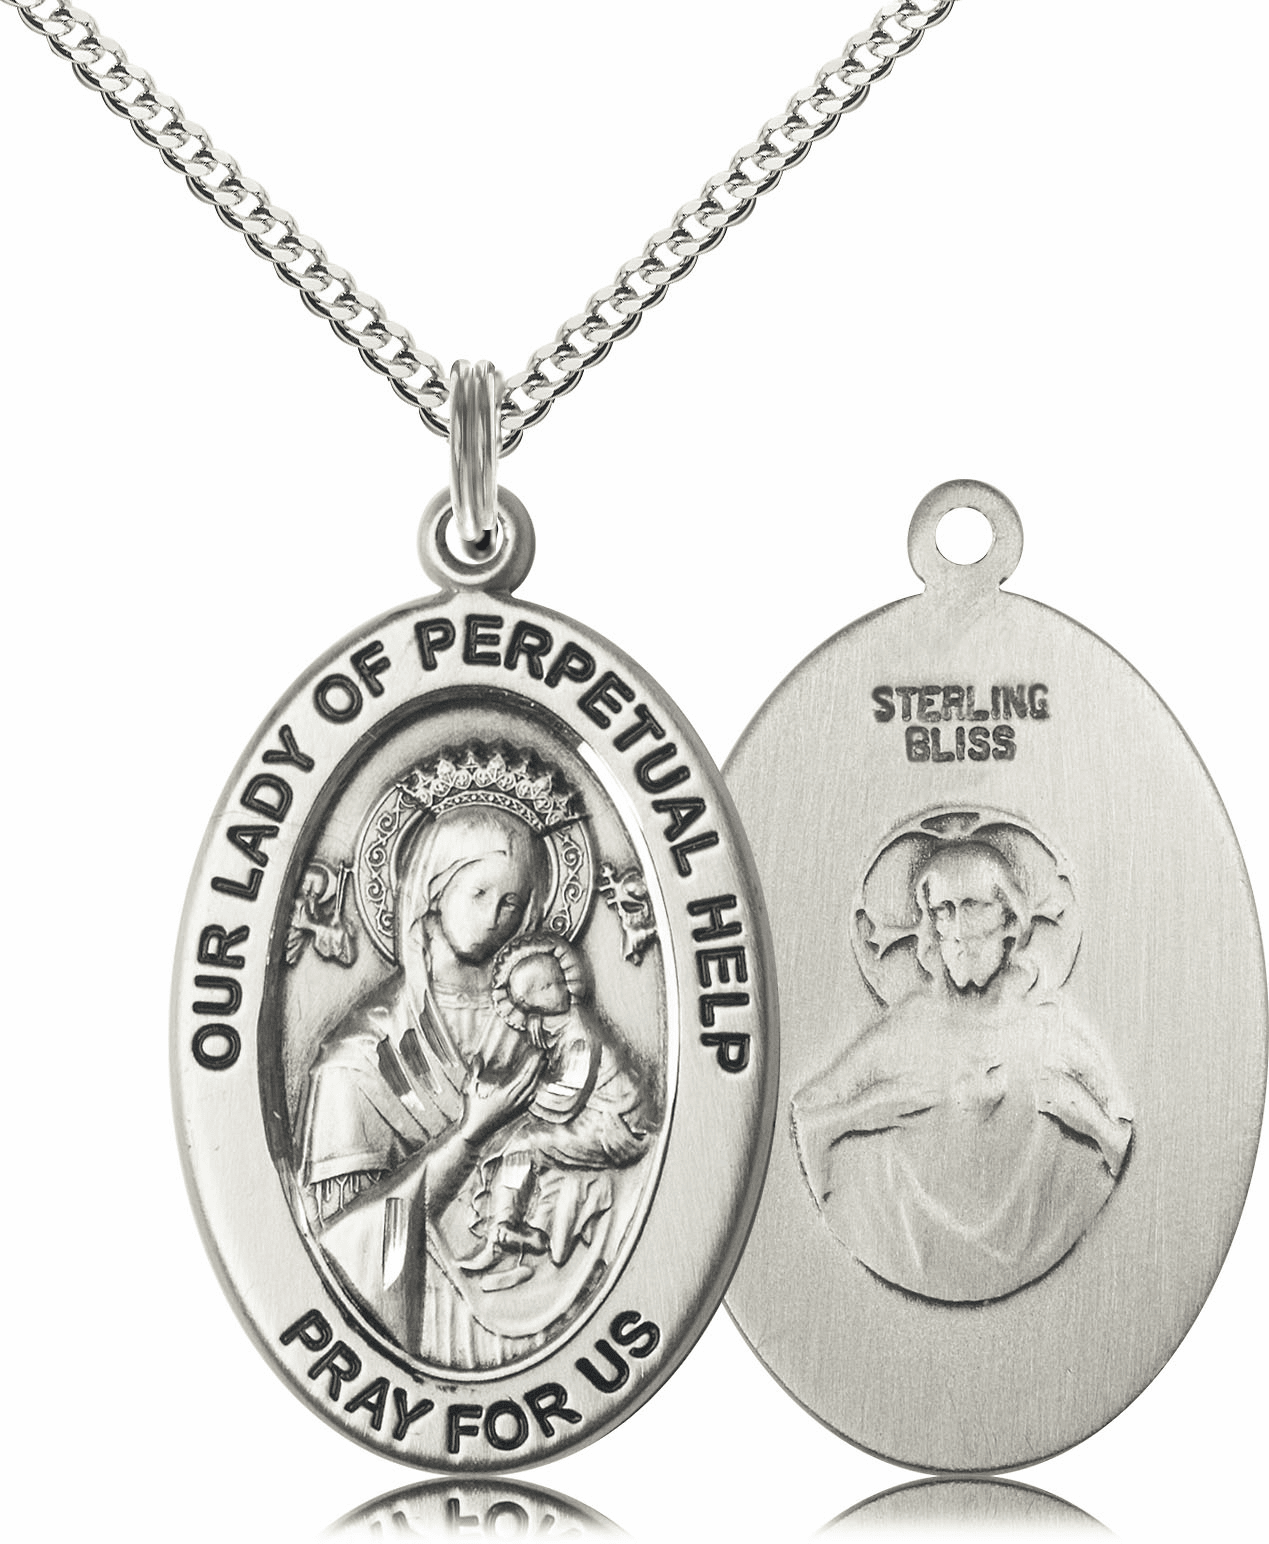 Bliss Mfg Our Lady of Perpetual Help Sterling Silver Medal Necklace w/Chain